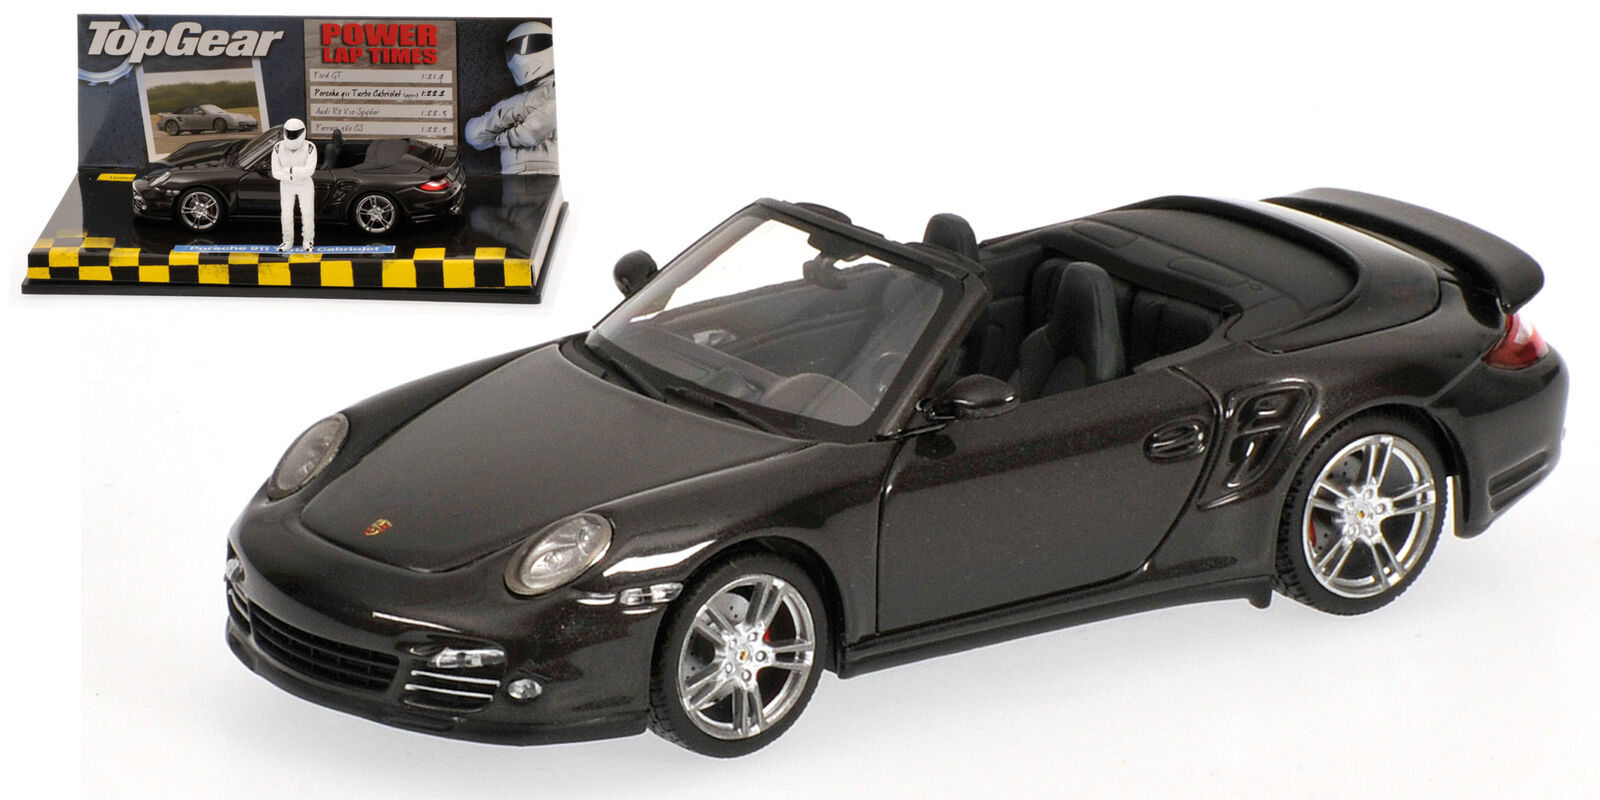 Porsche 911 II) Turbo (997 II) 911 2009 Grey Metallic Top Gear 1:43 Model MINICHAMPS 48d8ce